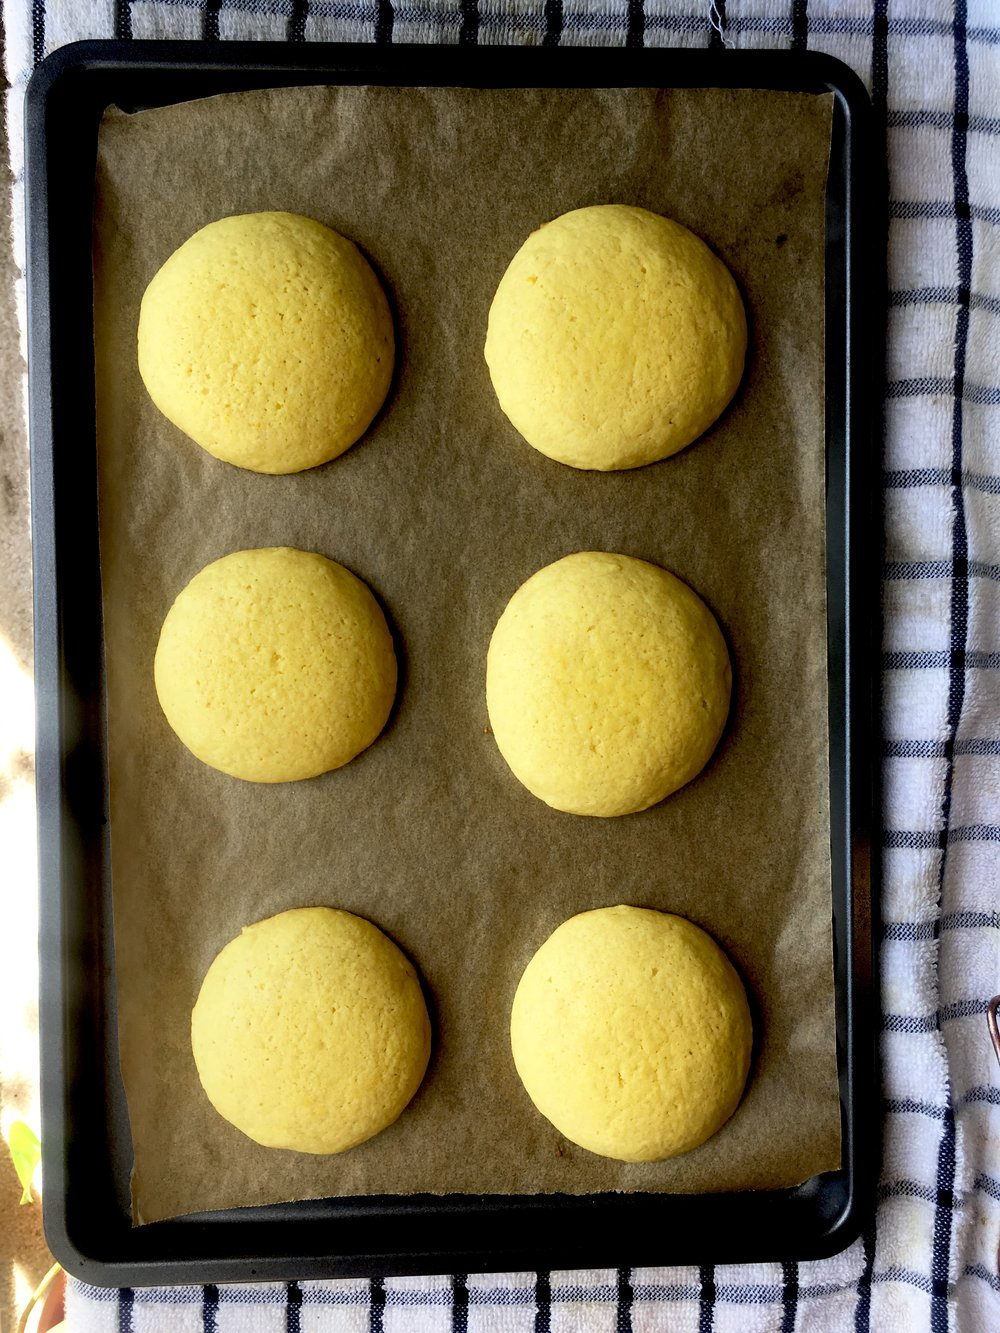 Bake for 12 minutes. Take out and let cool on baking sheet for 4 minutes.